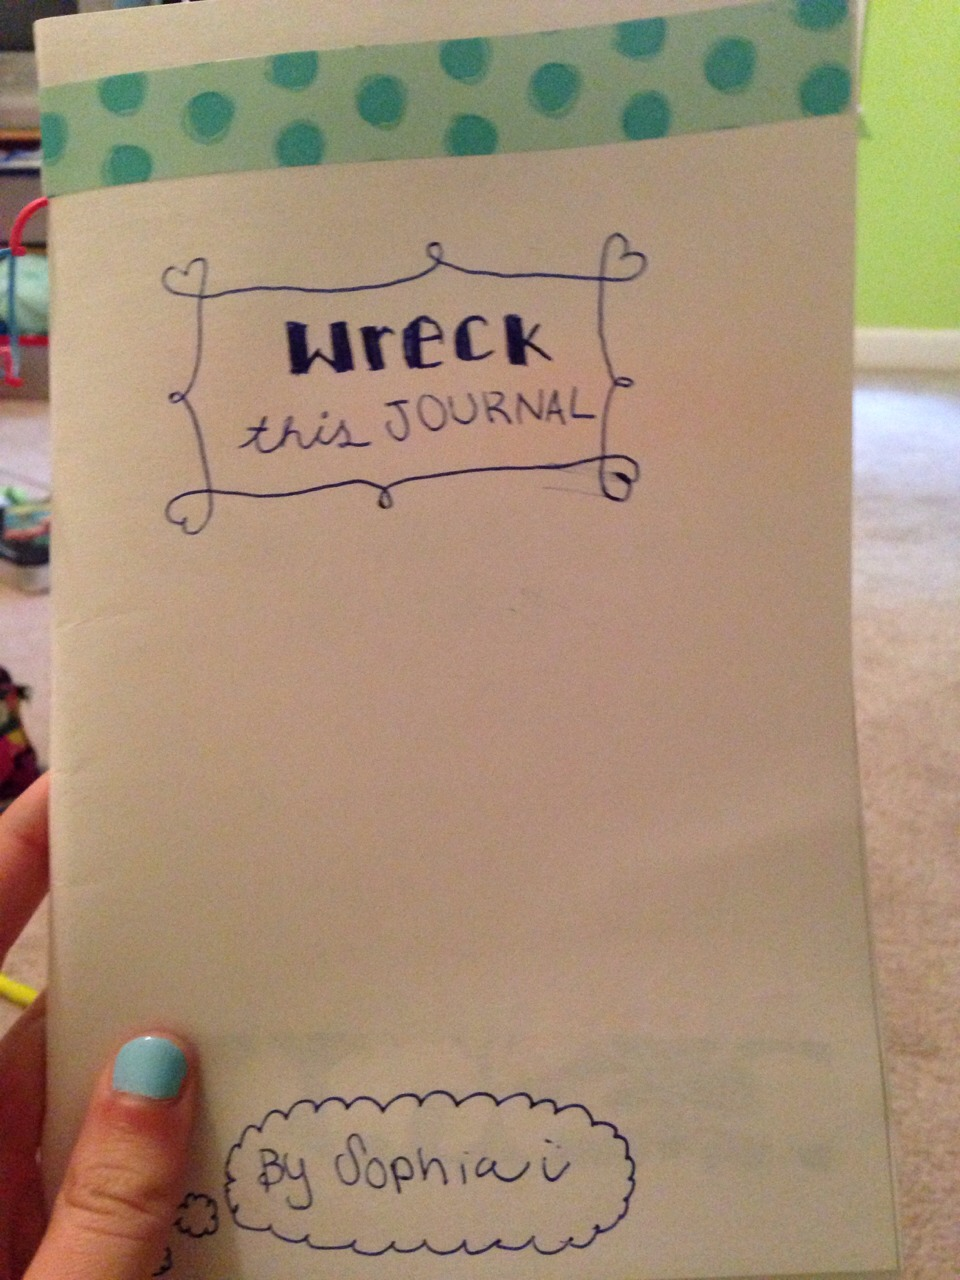 Ok so for my friends half birthday I decided to make my own version of wreck this journal